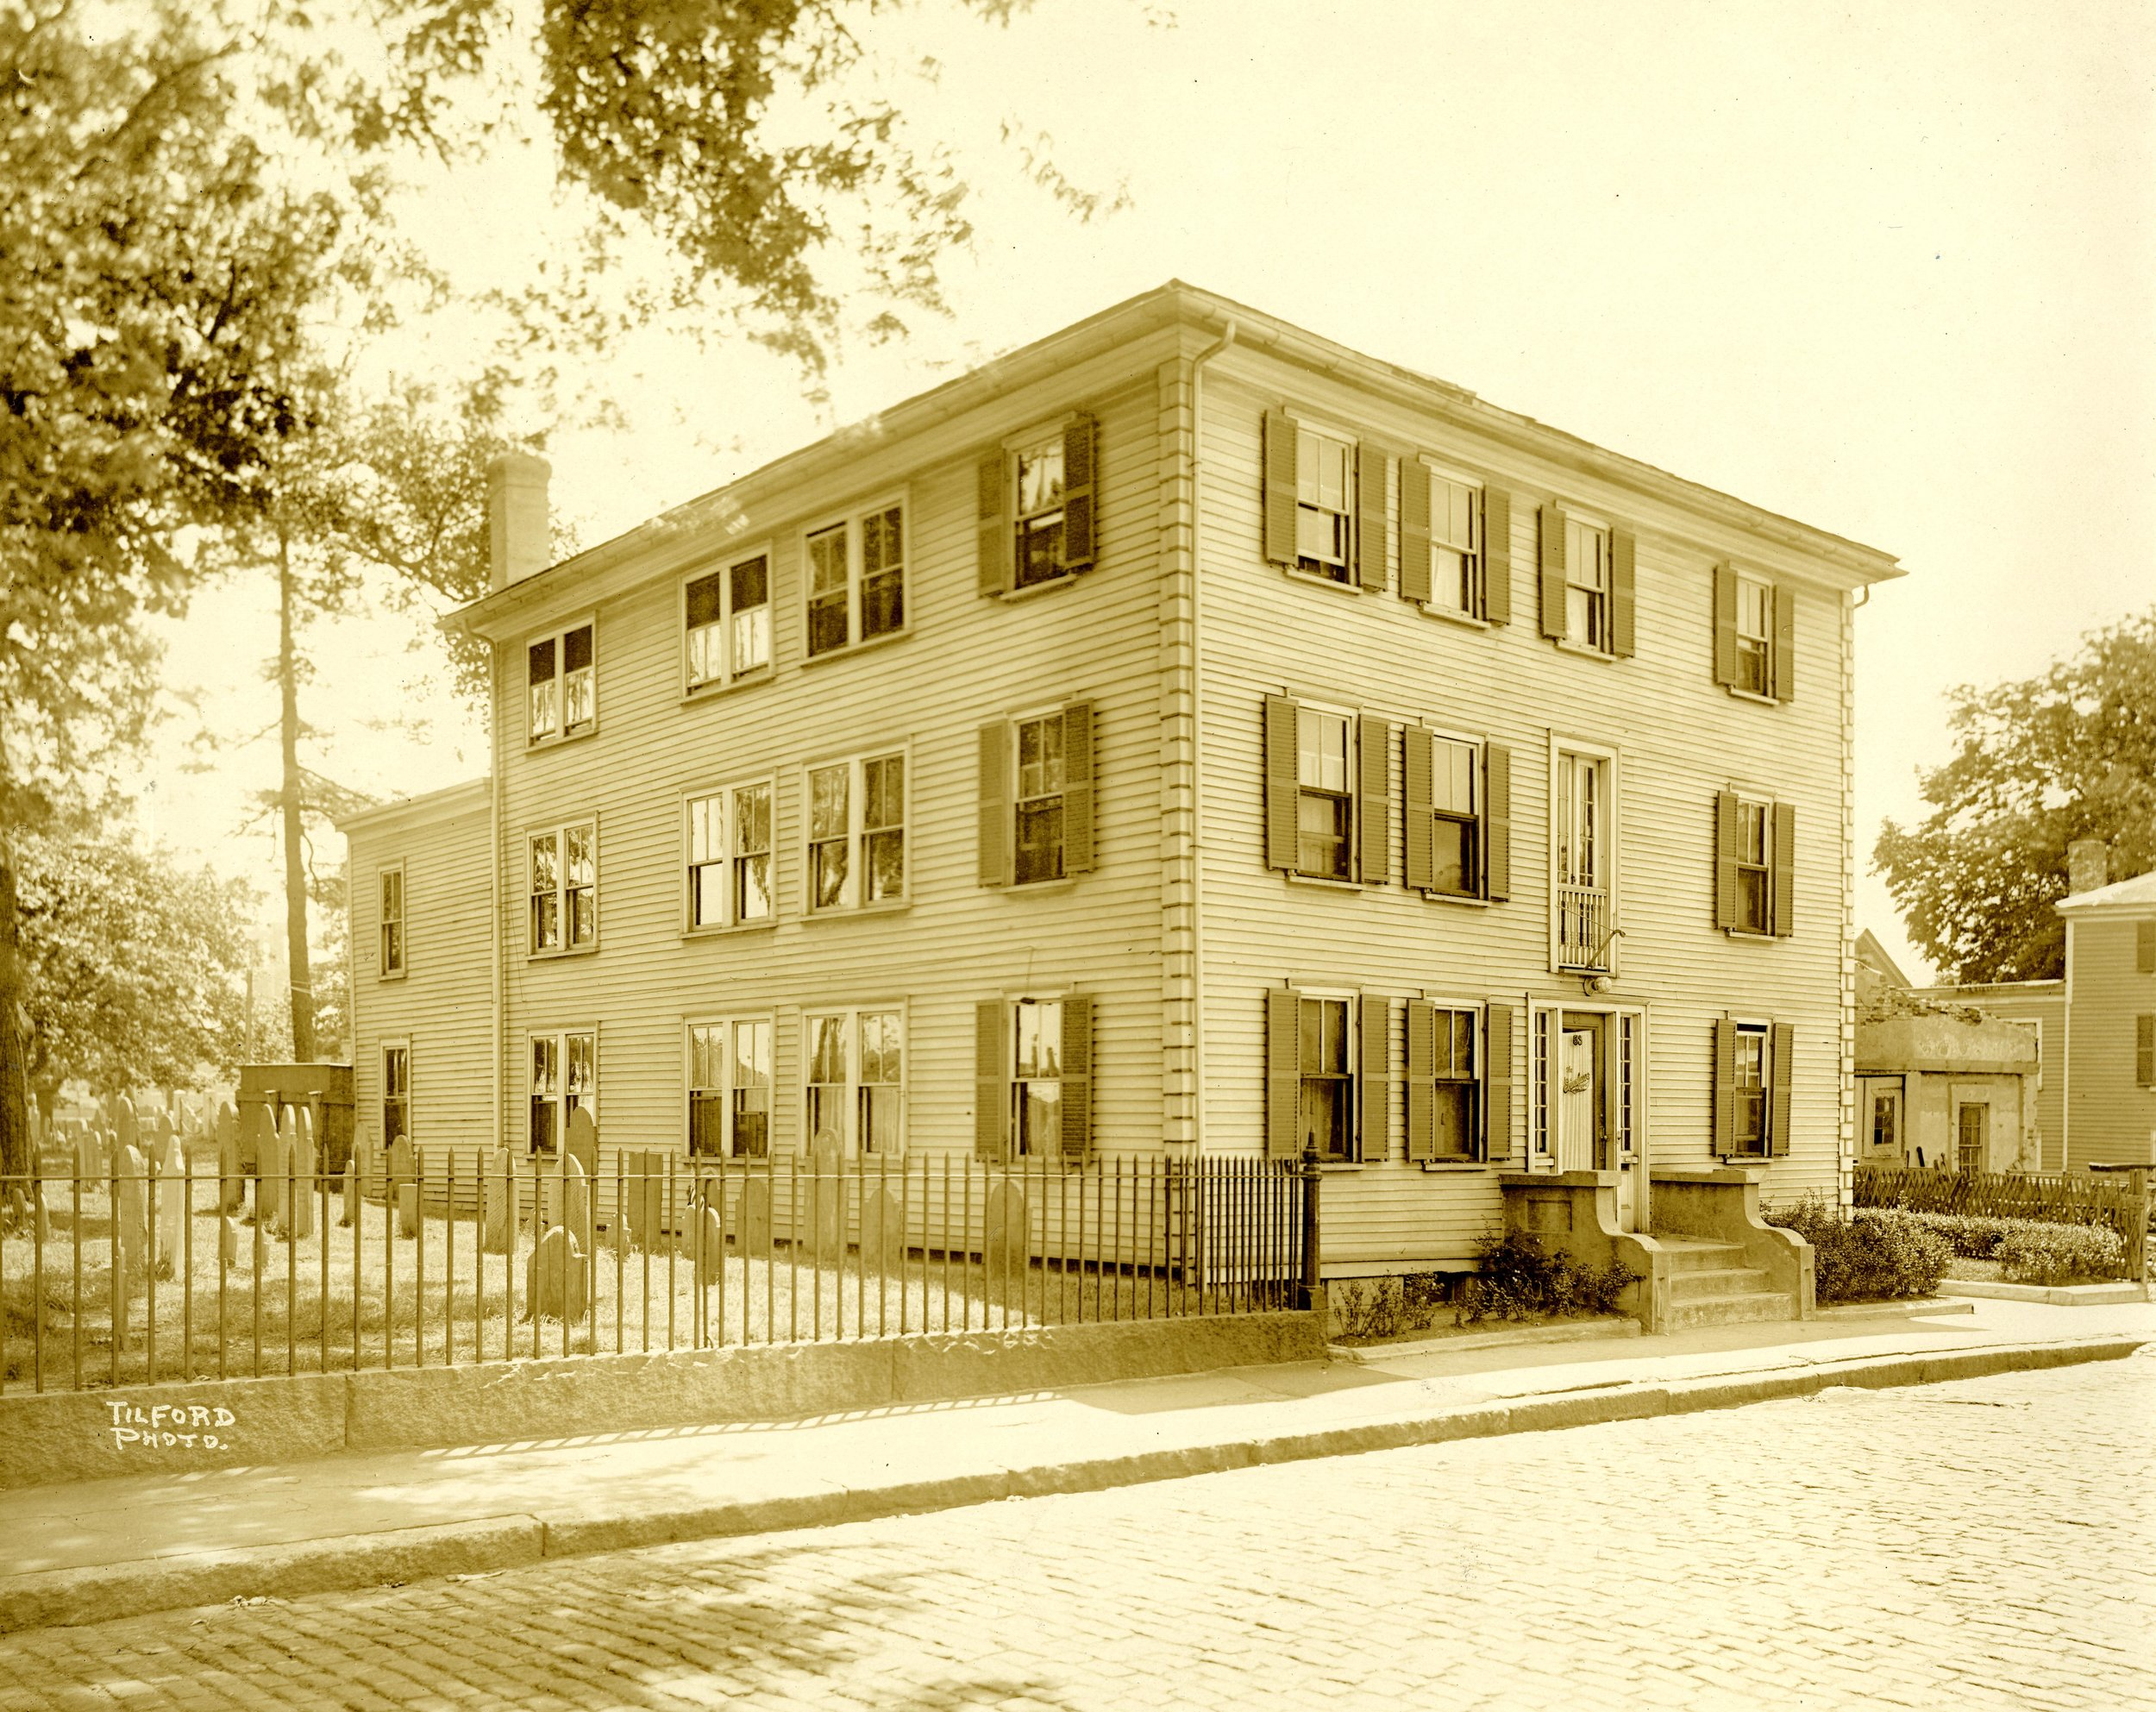 Grimshawe House - Nelson Dionne collection.jpg